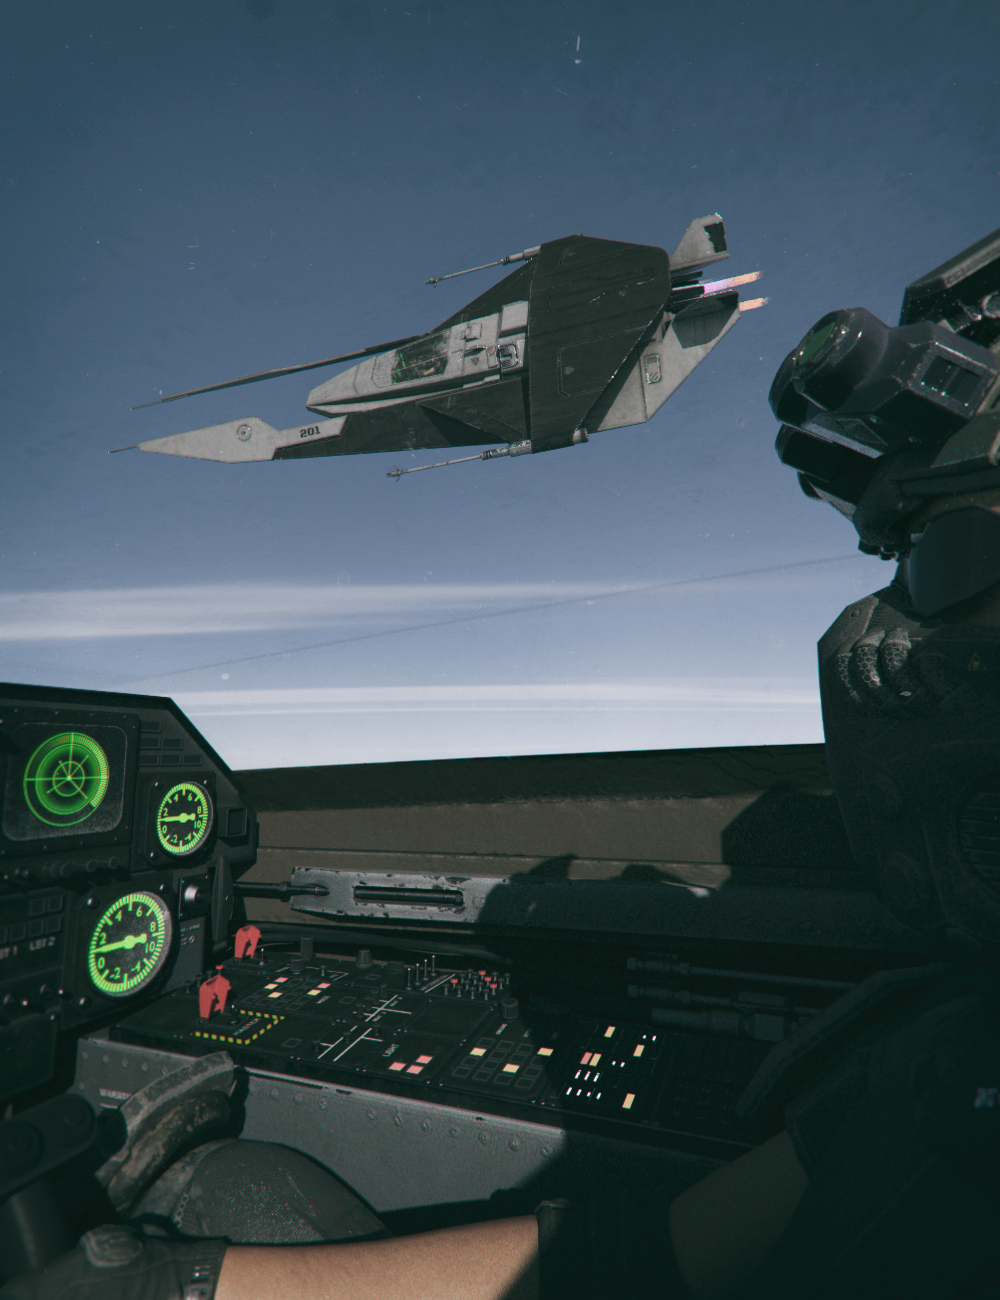 Starship R03 by: Mely3D, 3D Models by Daz 3D